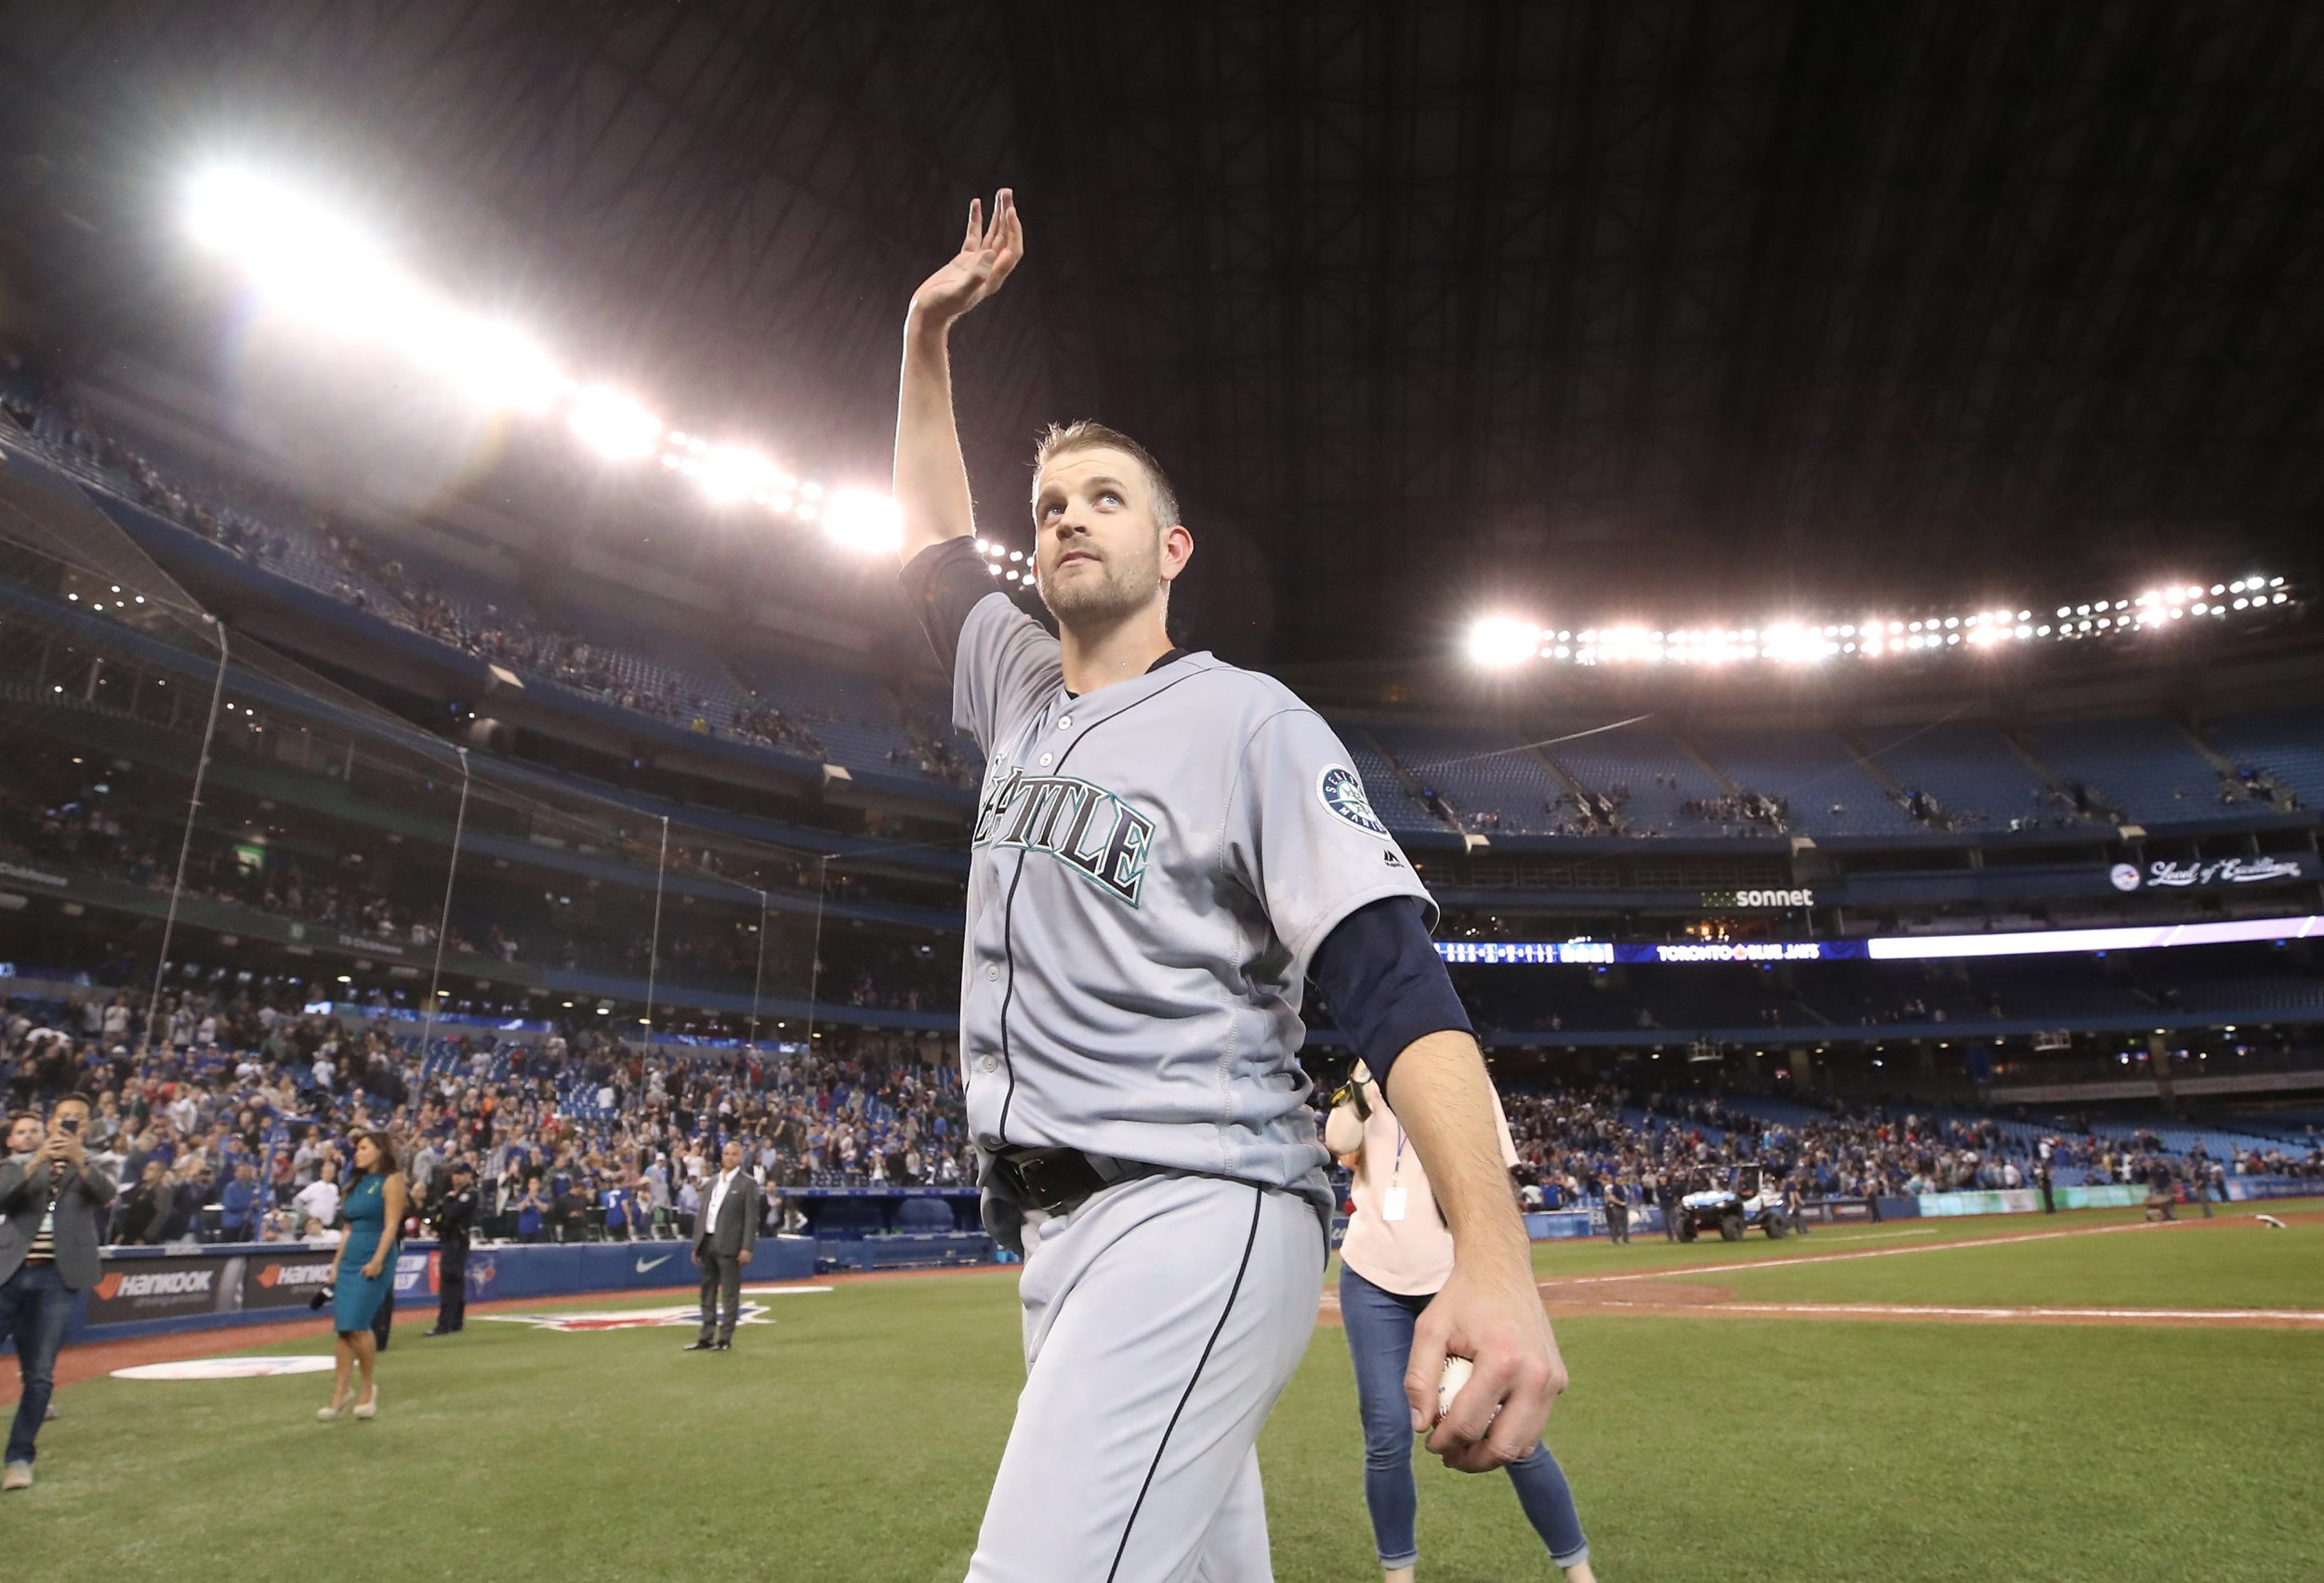 big sale 077ef 4f872 Mariners' James Paxton Makes History with No-Hitter Against ...